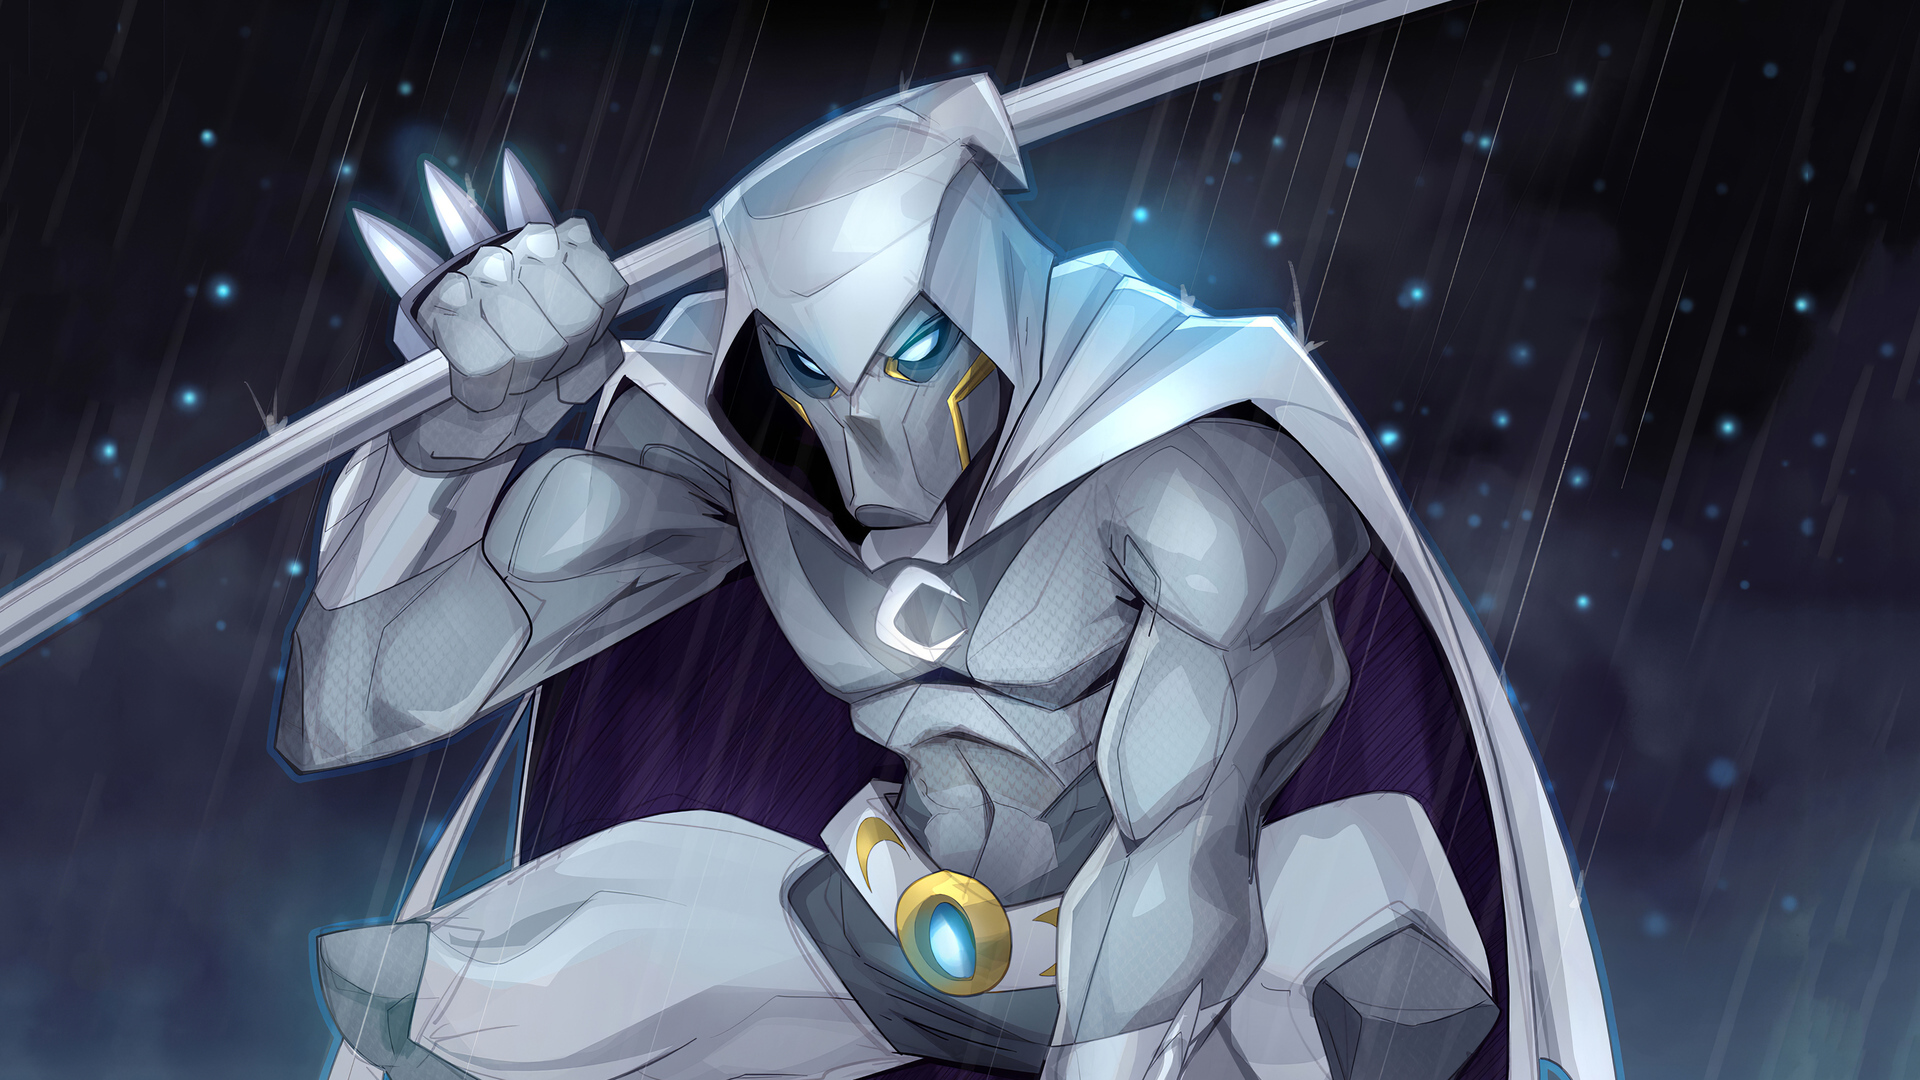 1920x1080 Moon Knight 4k 2020 Artwork Laptop Full HD 1080P HD 4k Wallpapers, Images, Backgrounds, Photos and Pictures